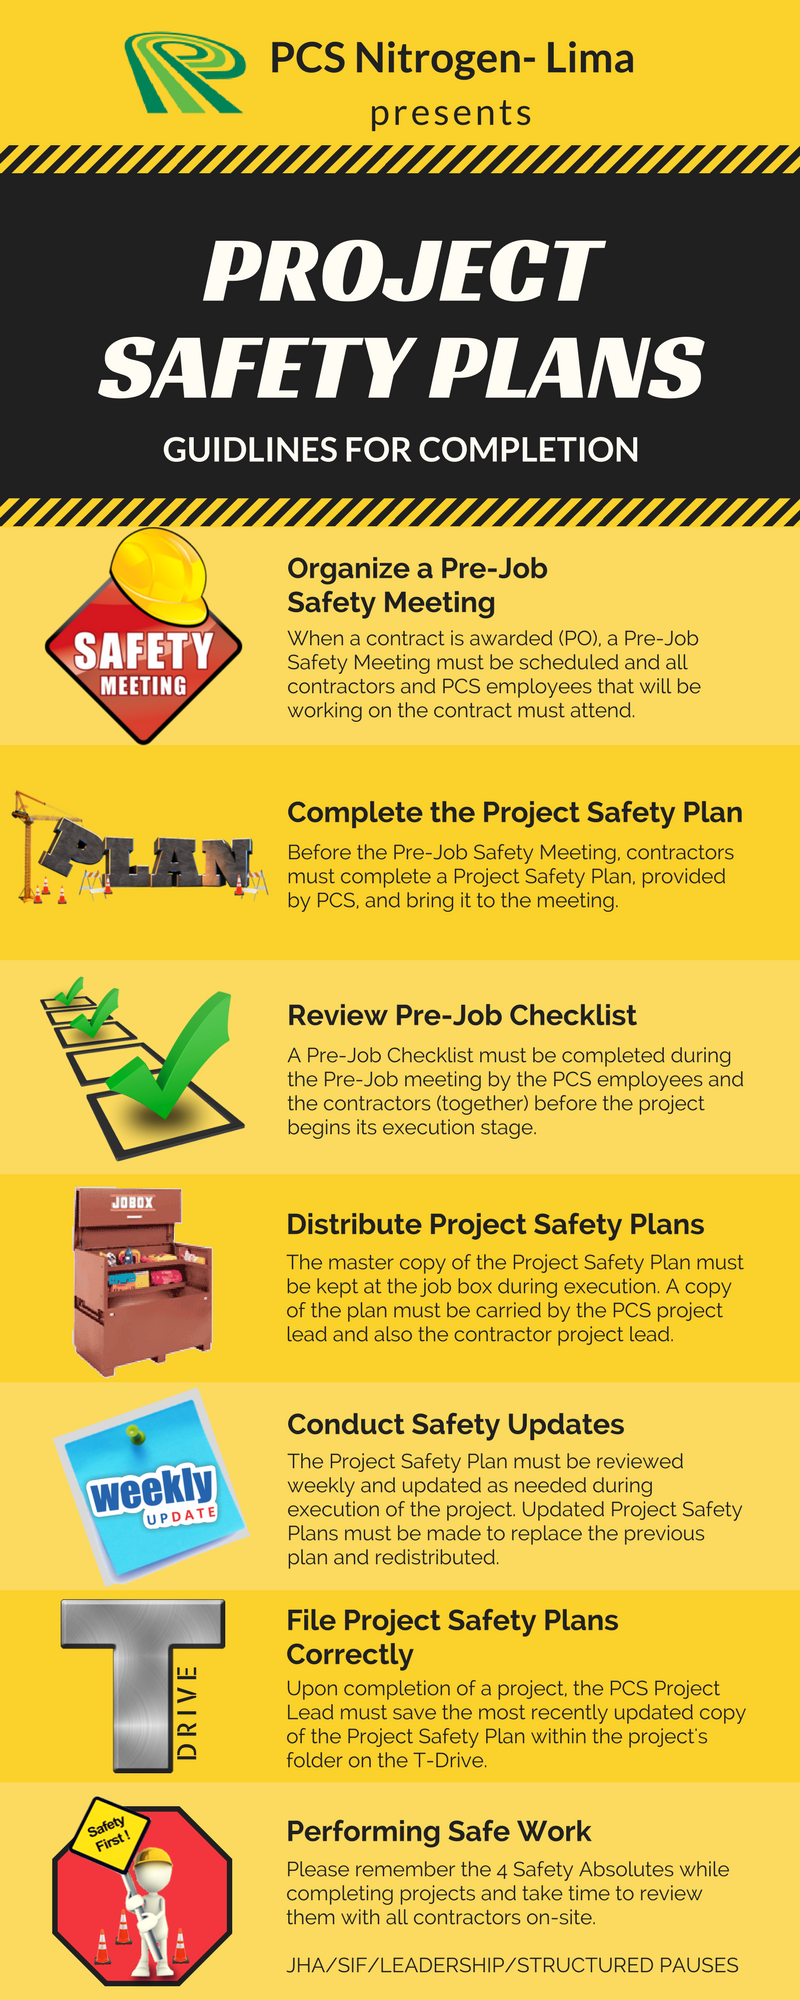 Sadie Park - PROJECT SAFETY PLANS